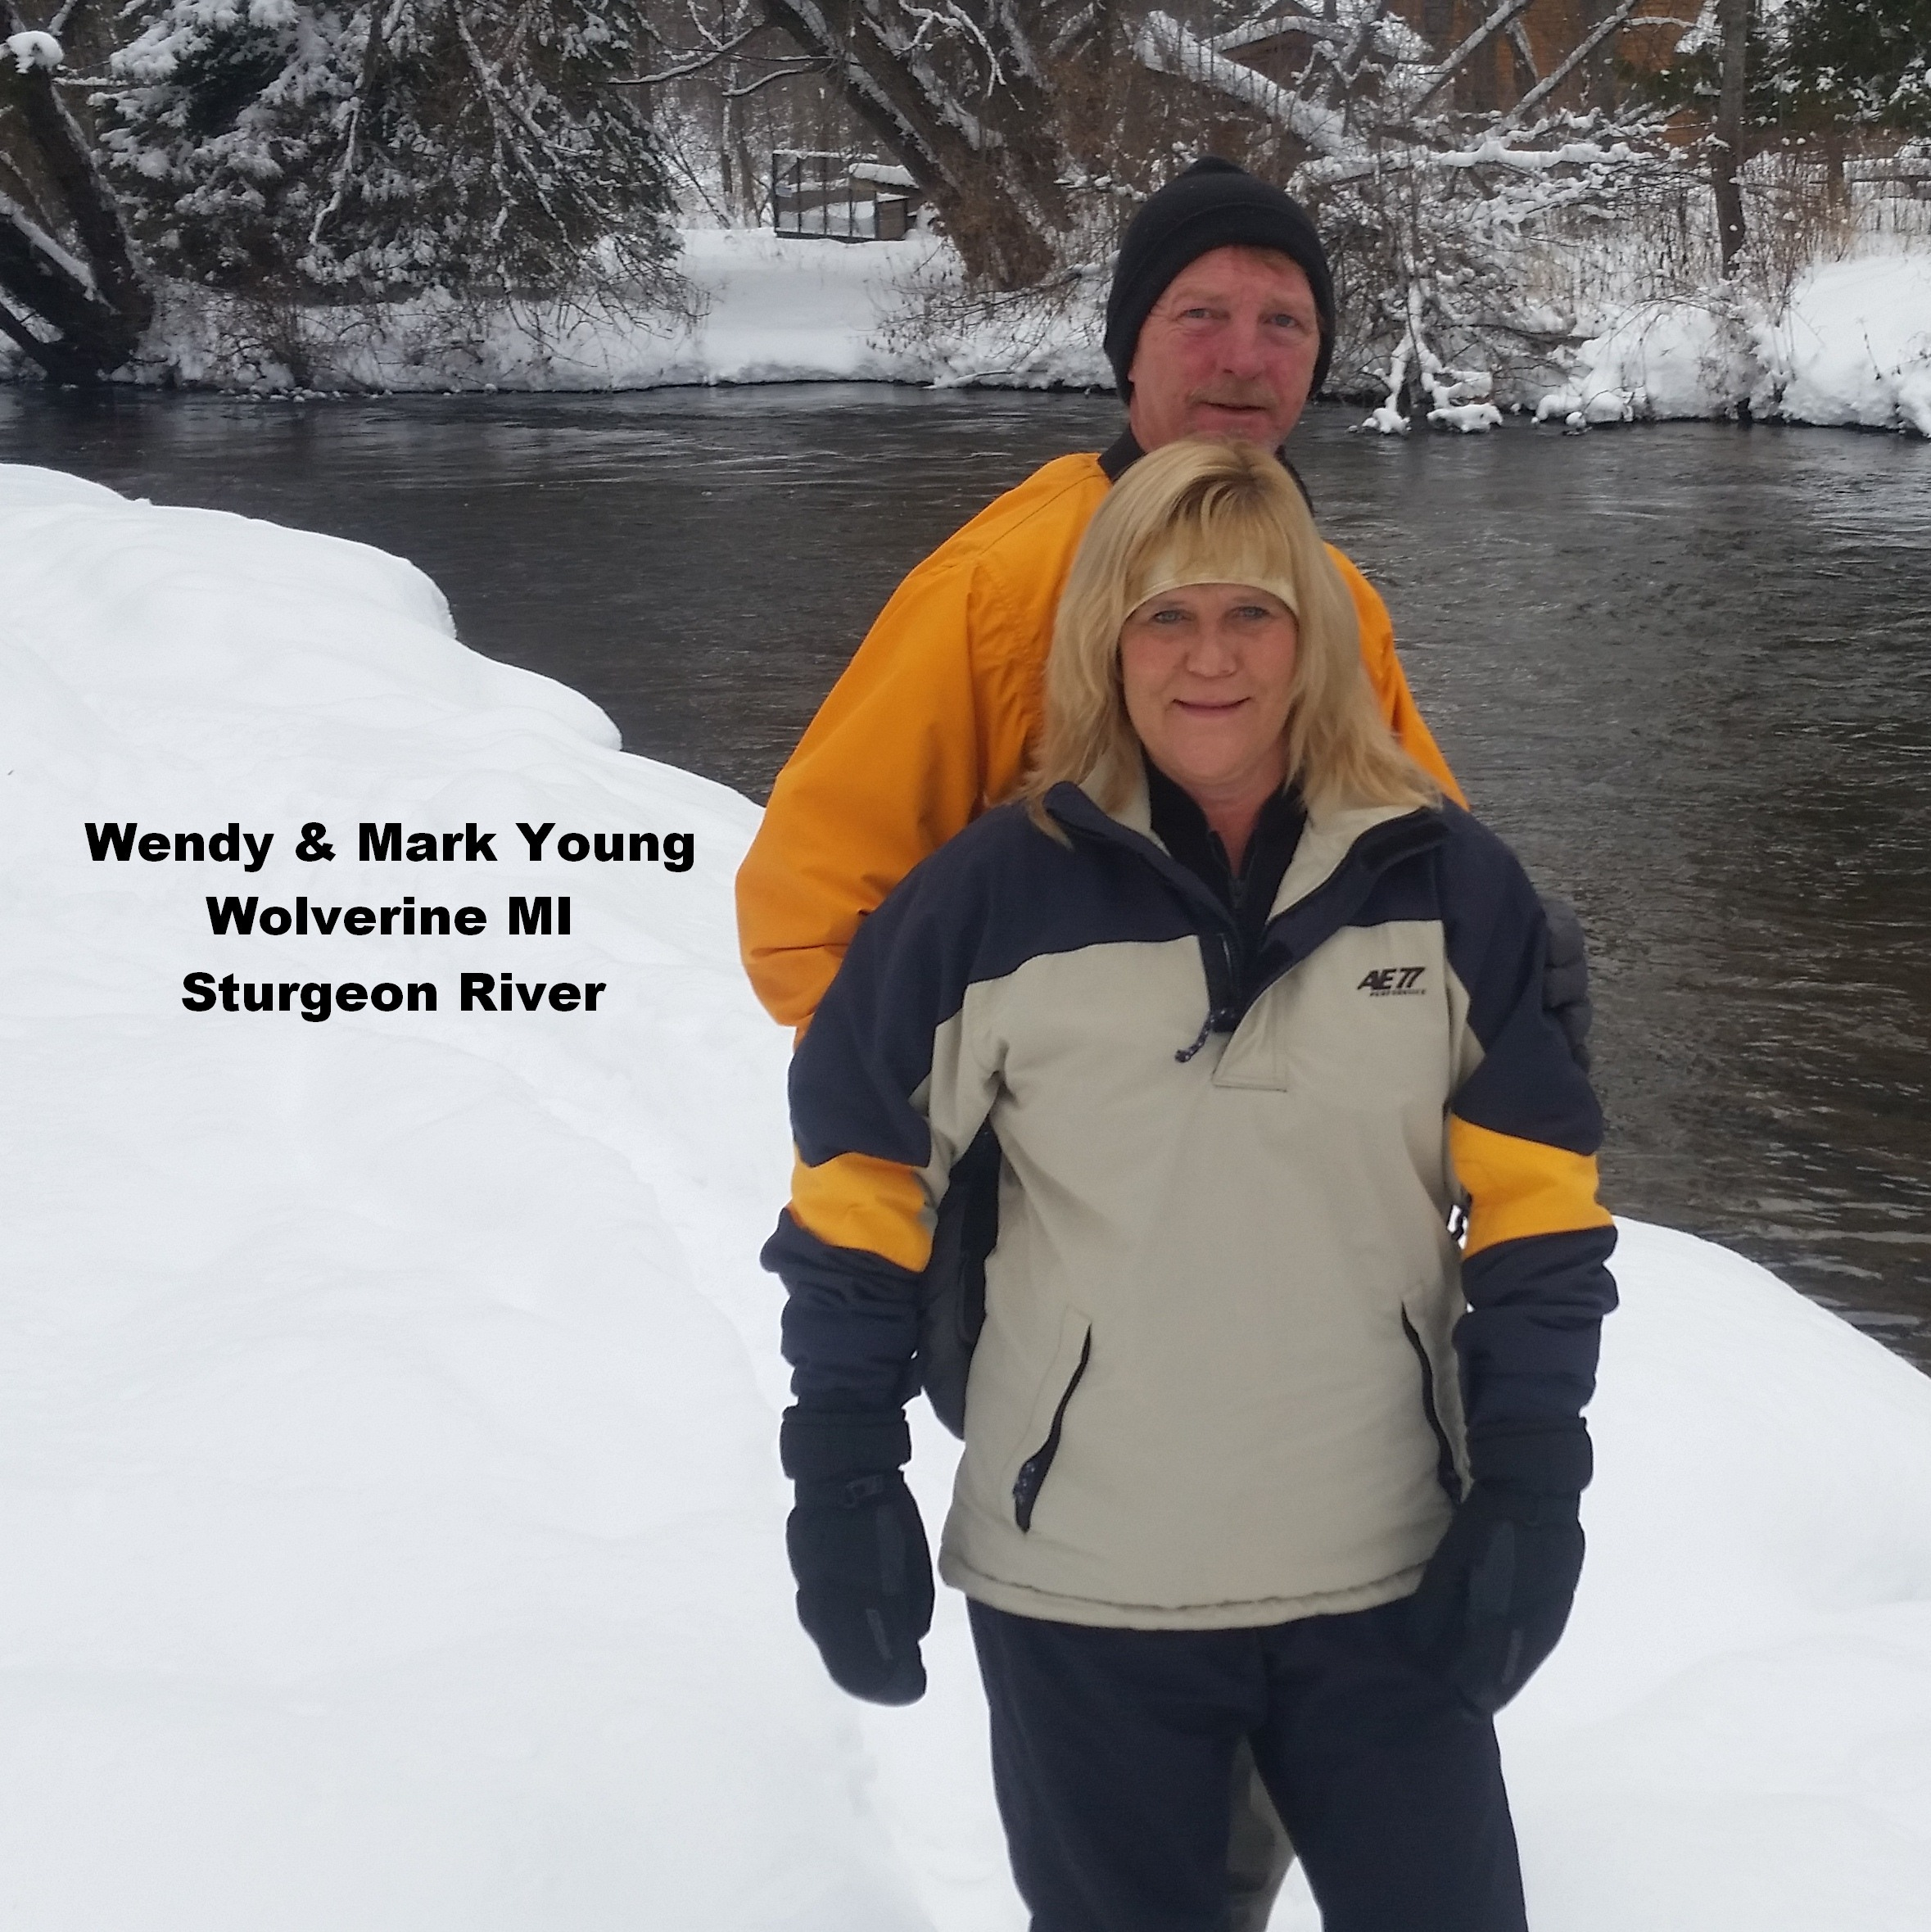 Mark and Wendy Young - Wolverine MI